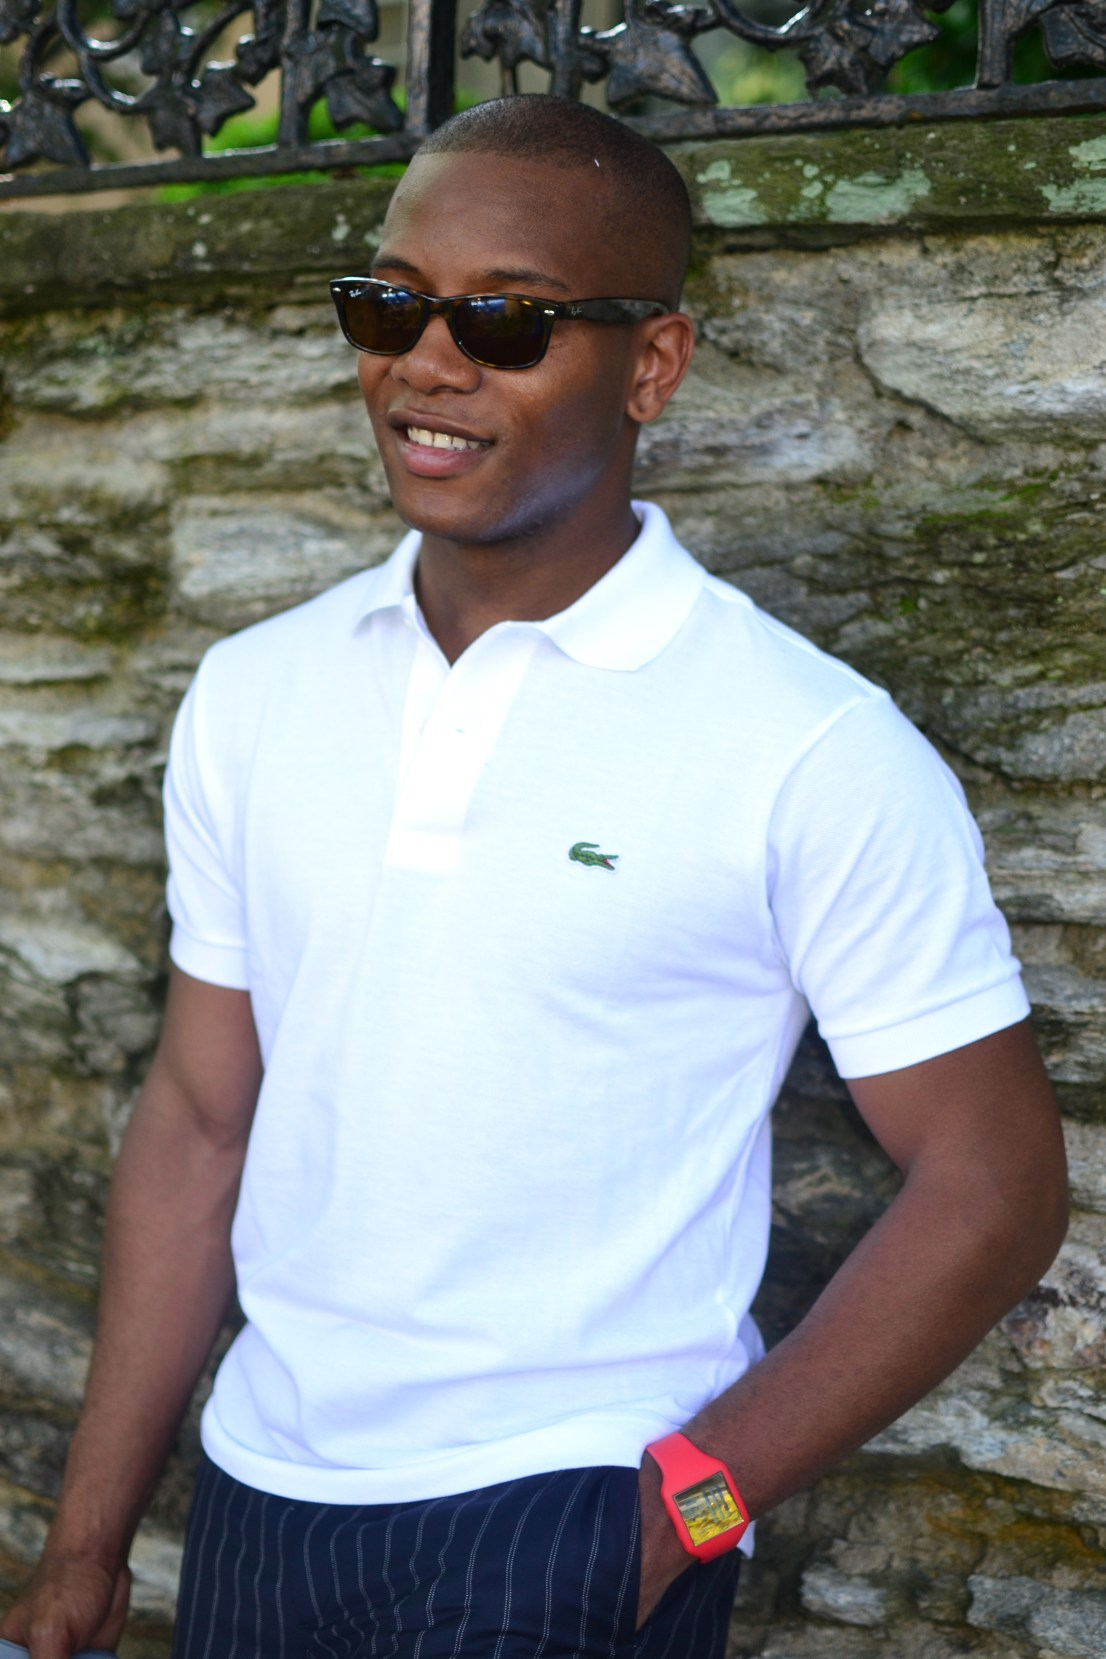 Lacoste 80th Anniversary of the 12.12.1 Polo Shirt via Men's Style Pro